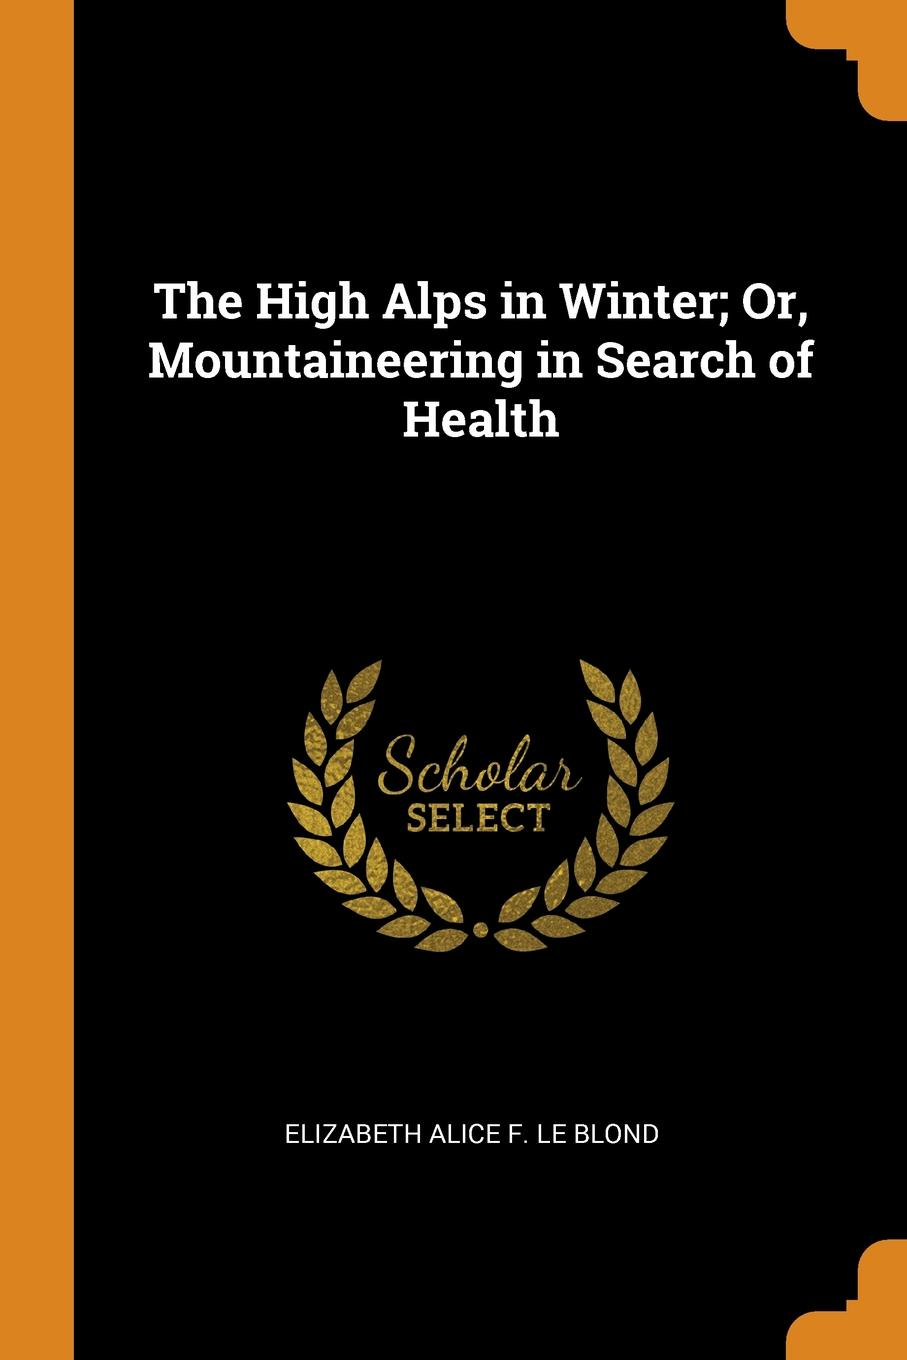 The High Alps in Winter; Or, Mountaineering in Search of Health. Elizabeth Alice F. Le Blond